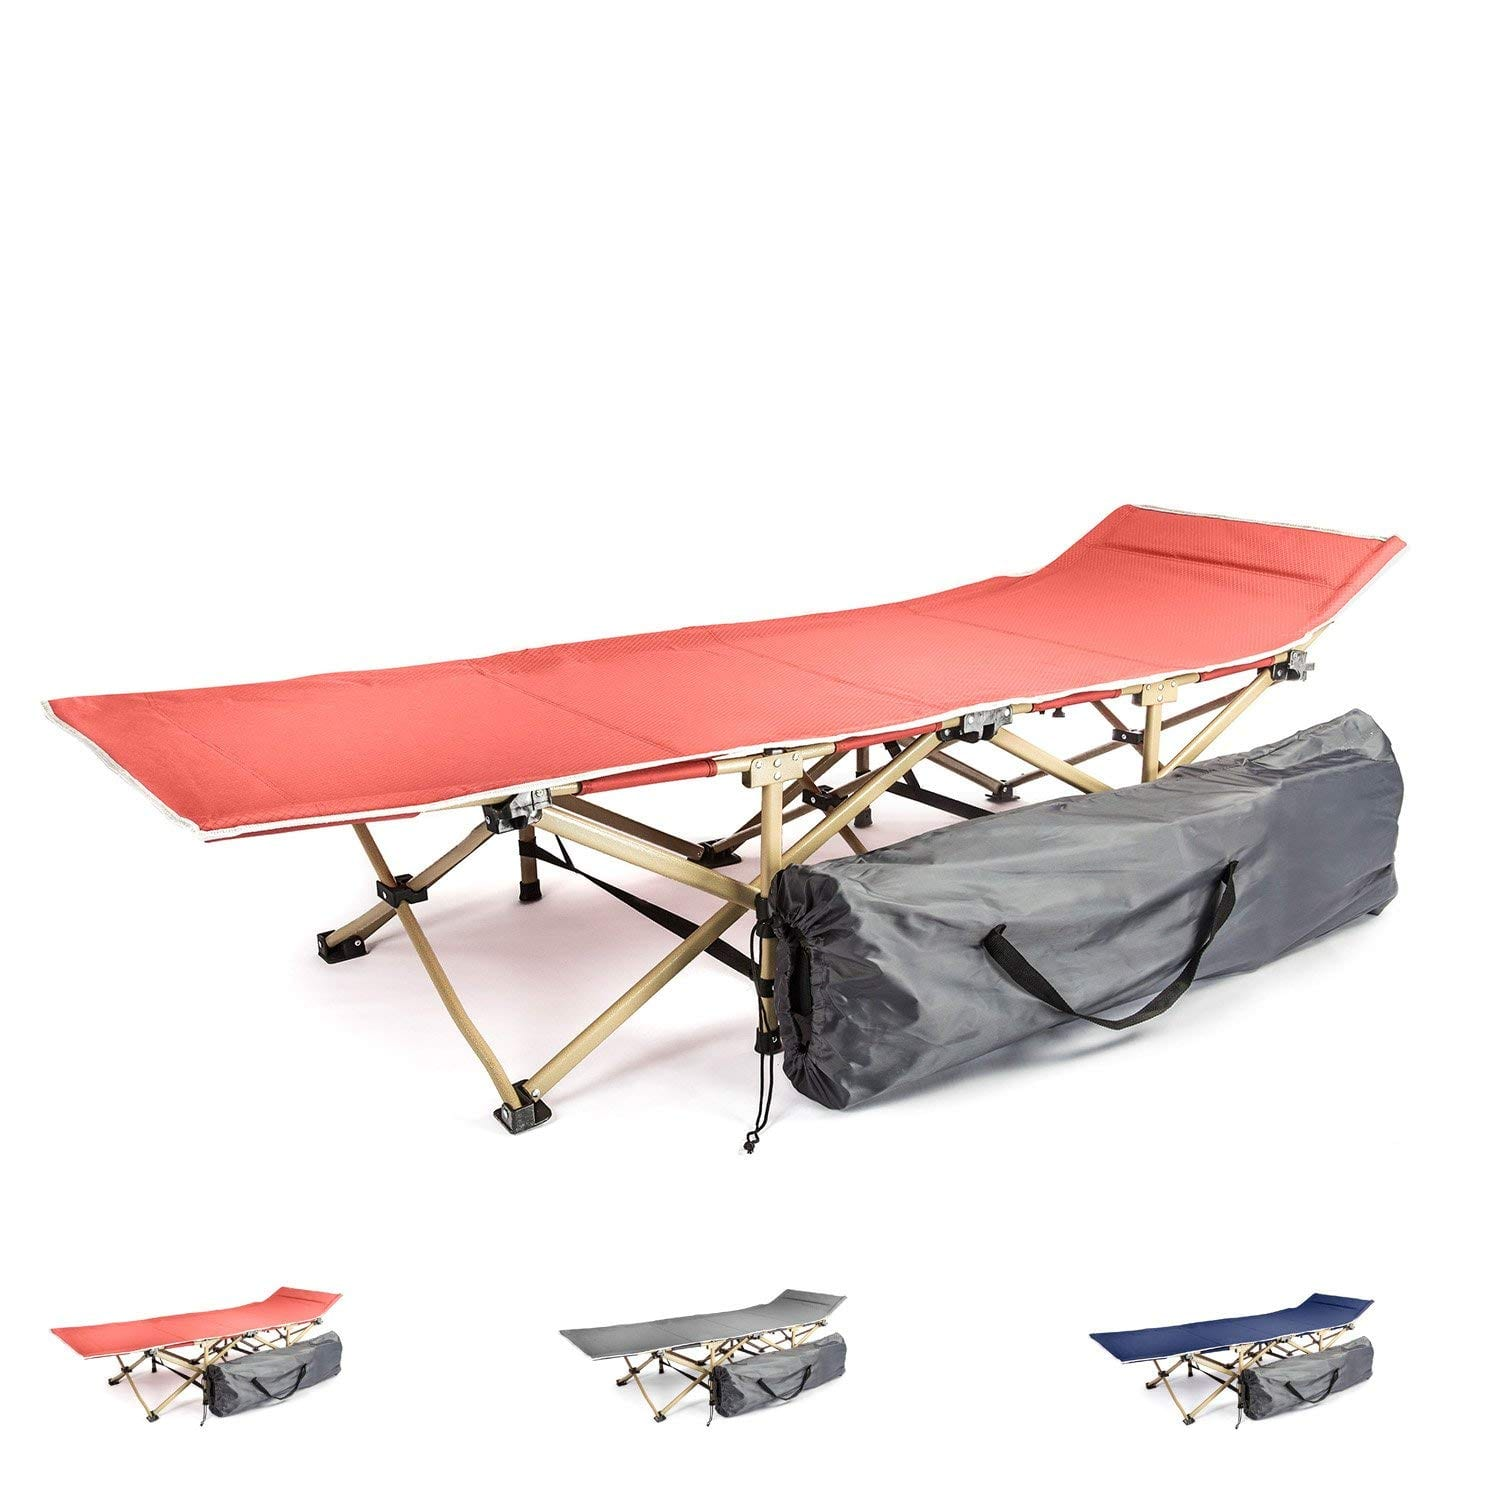 KyRush It Folding Beds Review by www.snoremagazine.com